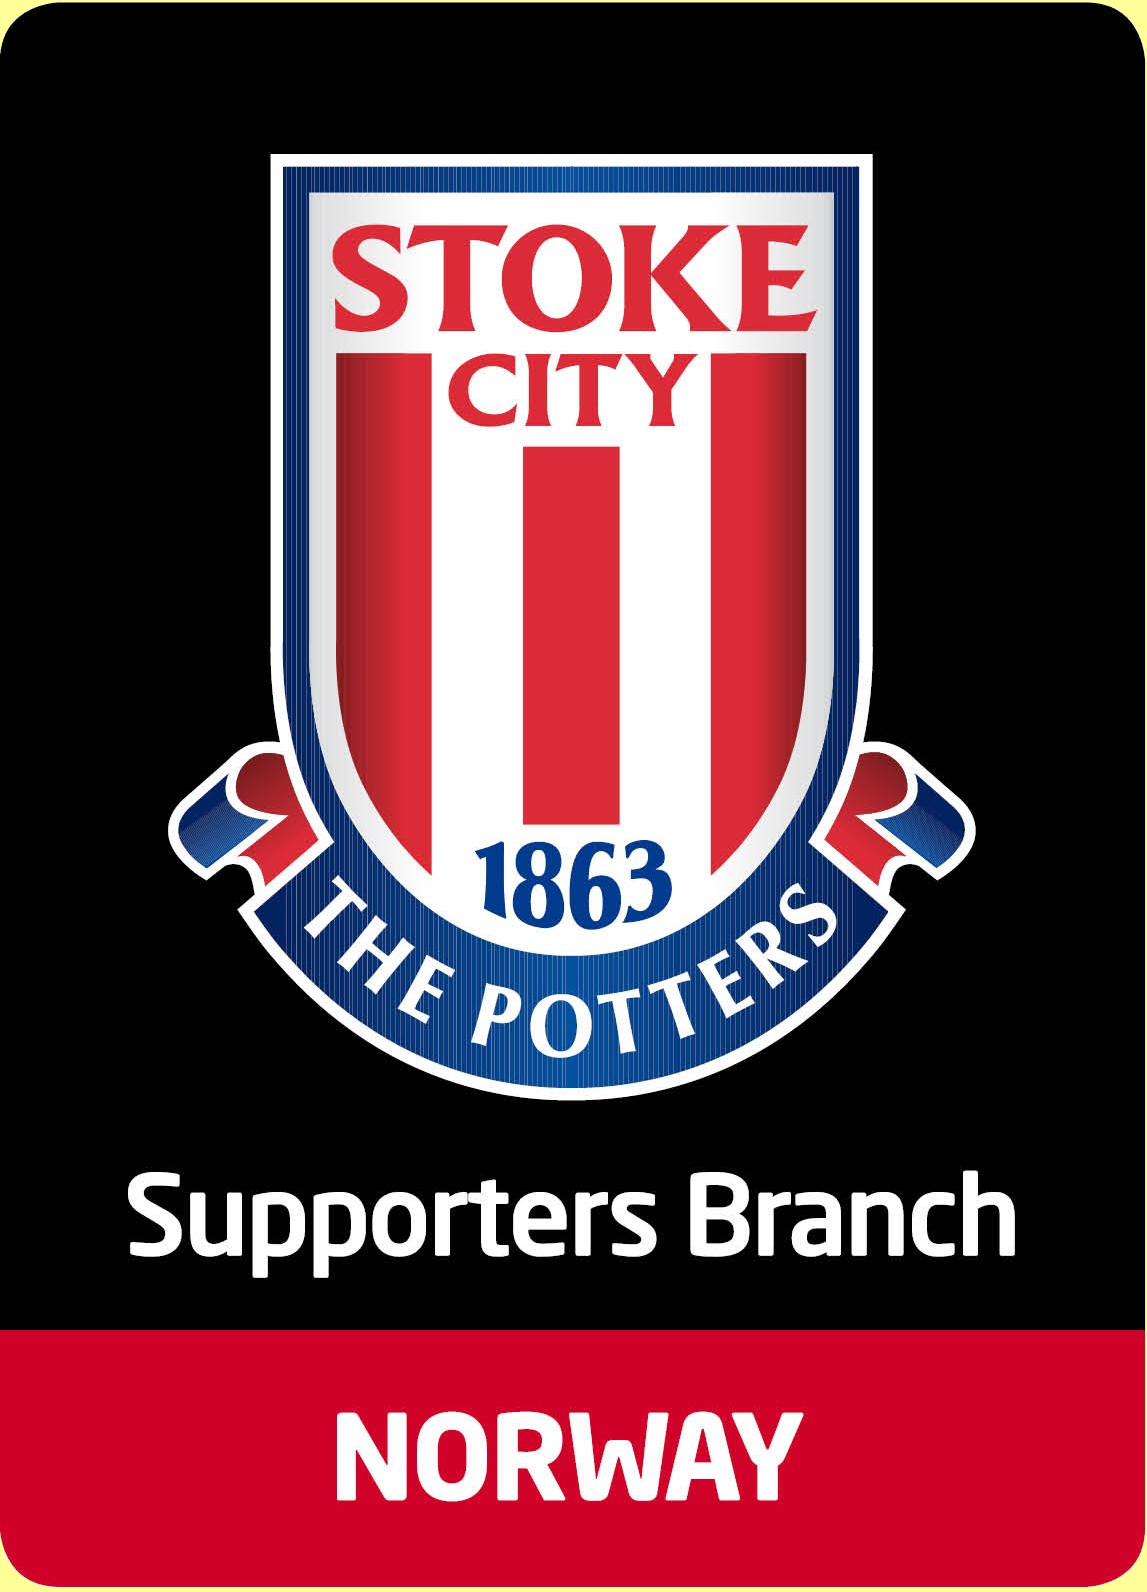 Stoke City Supporters Branch - Norway